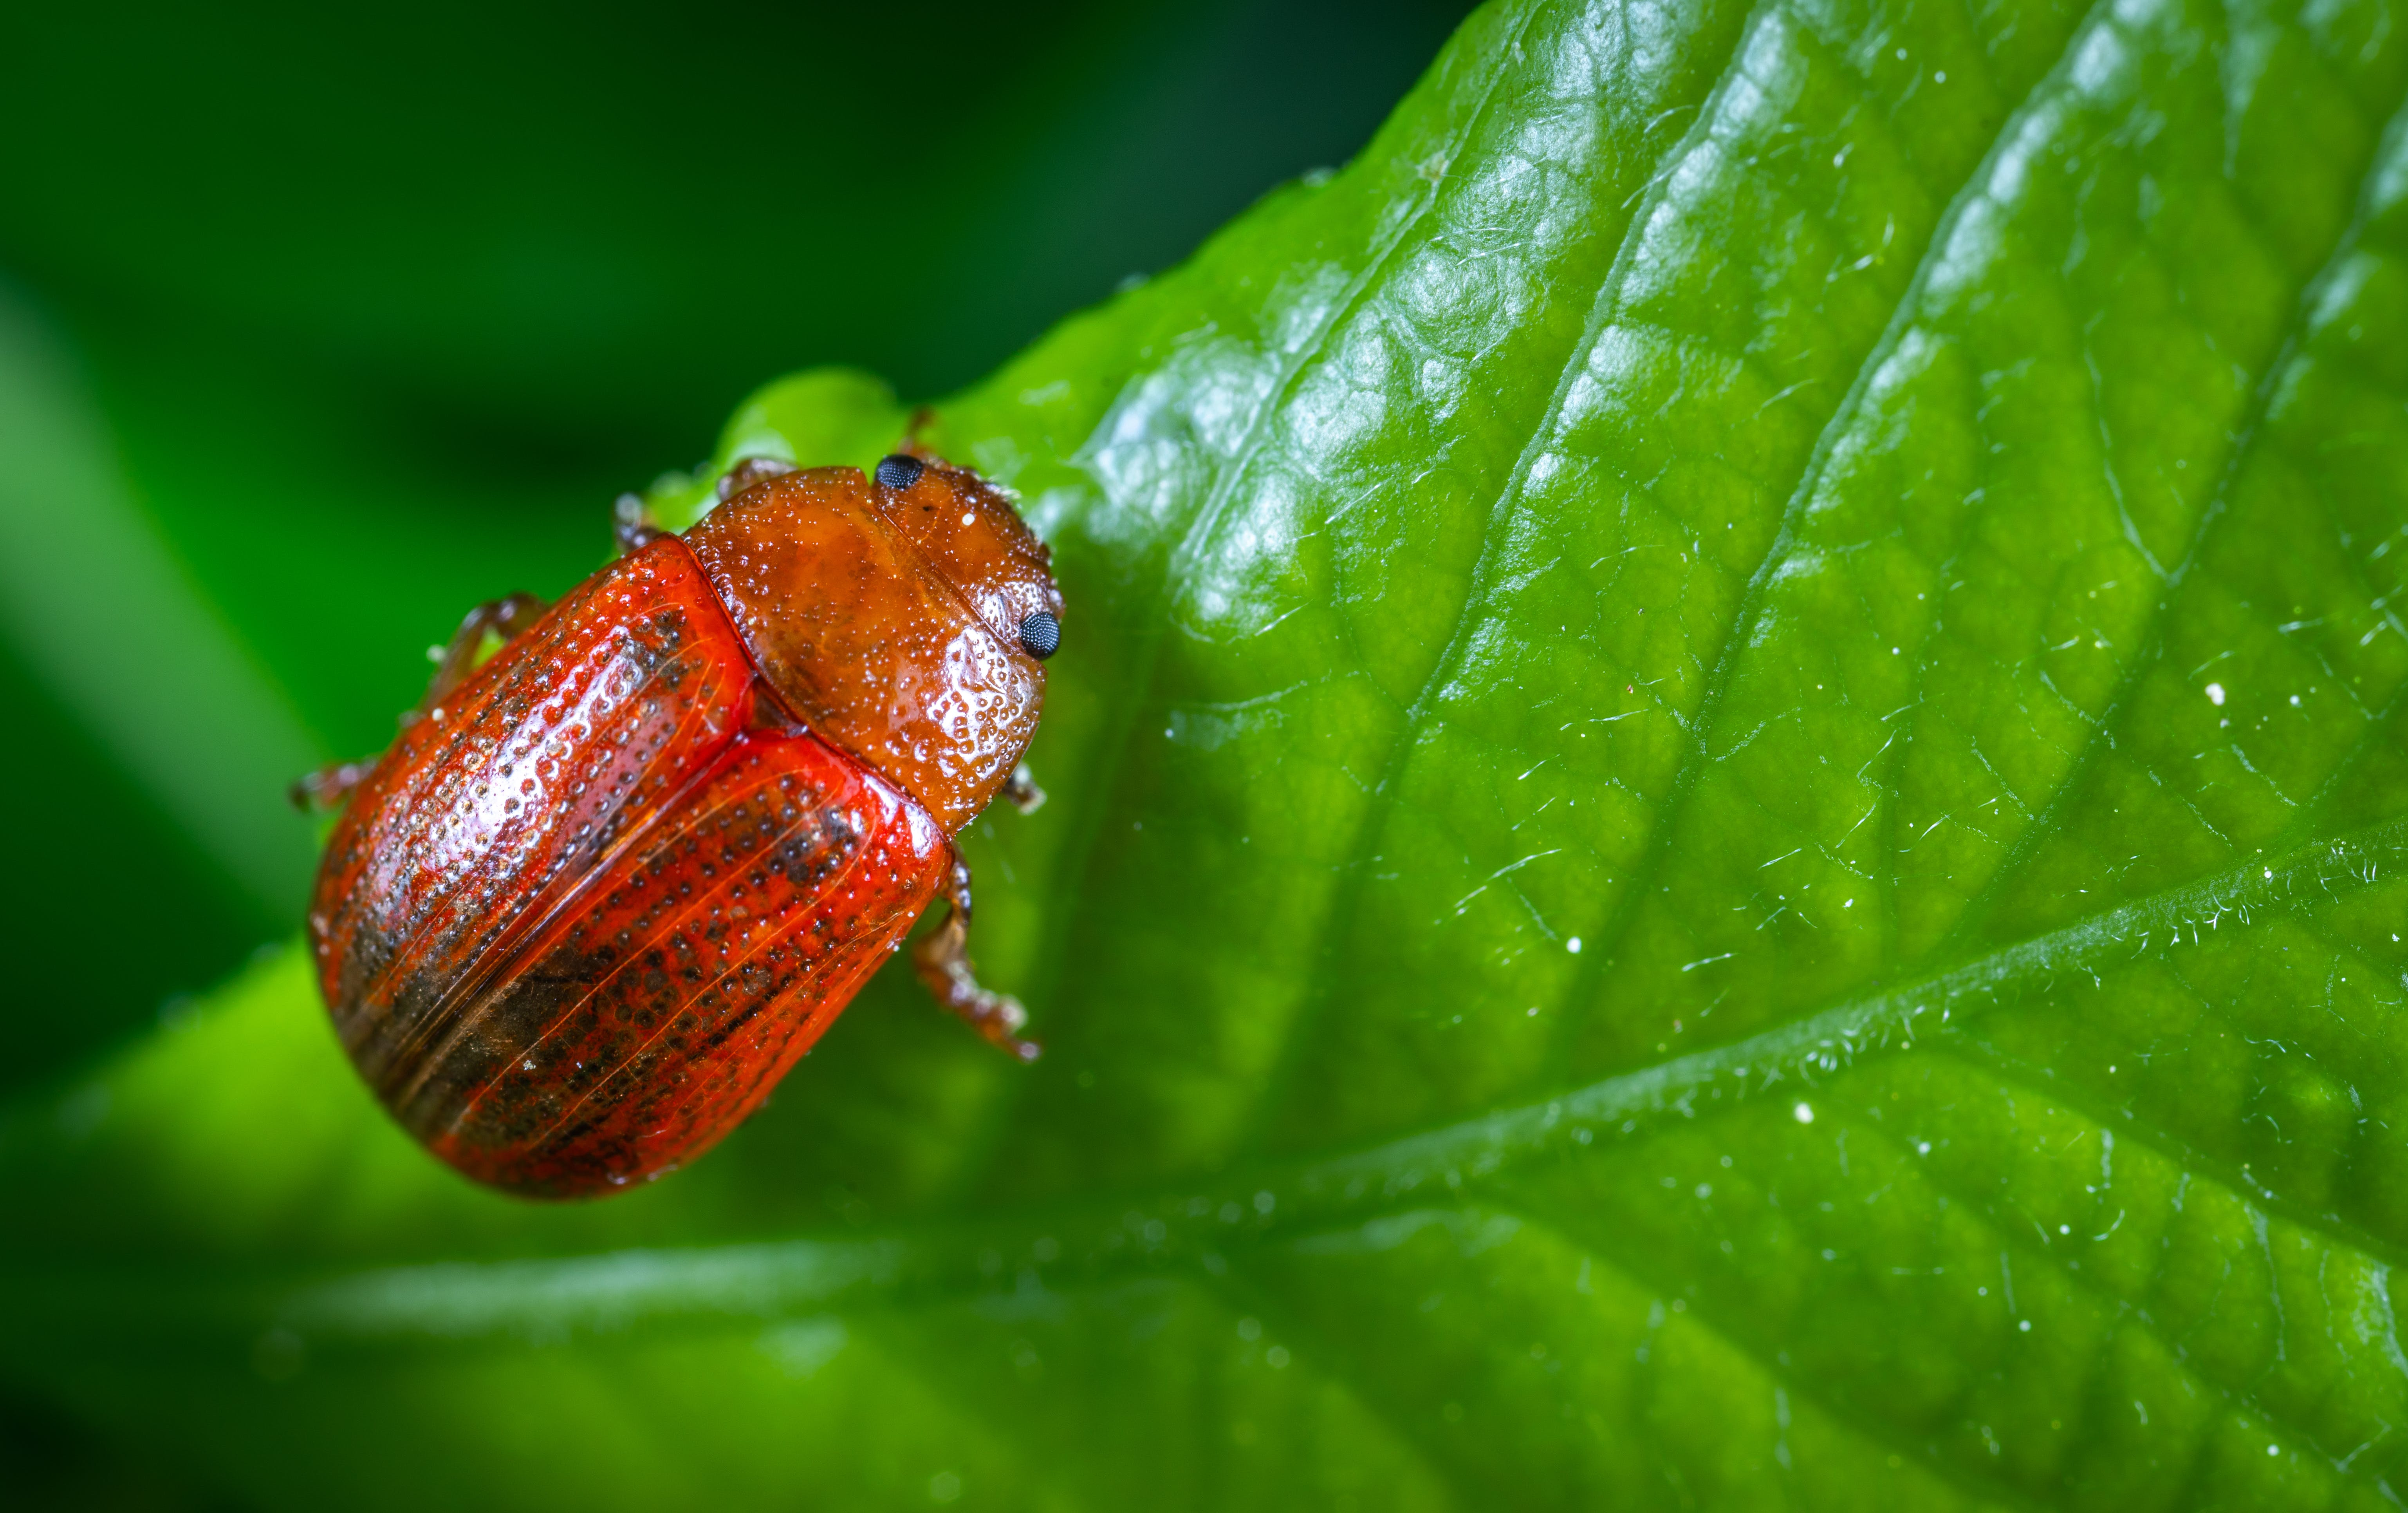 Selective Focus Photography of Red Beetle Perched on Green Leaf Plant